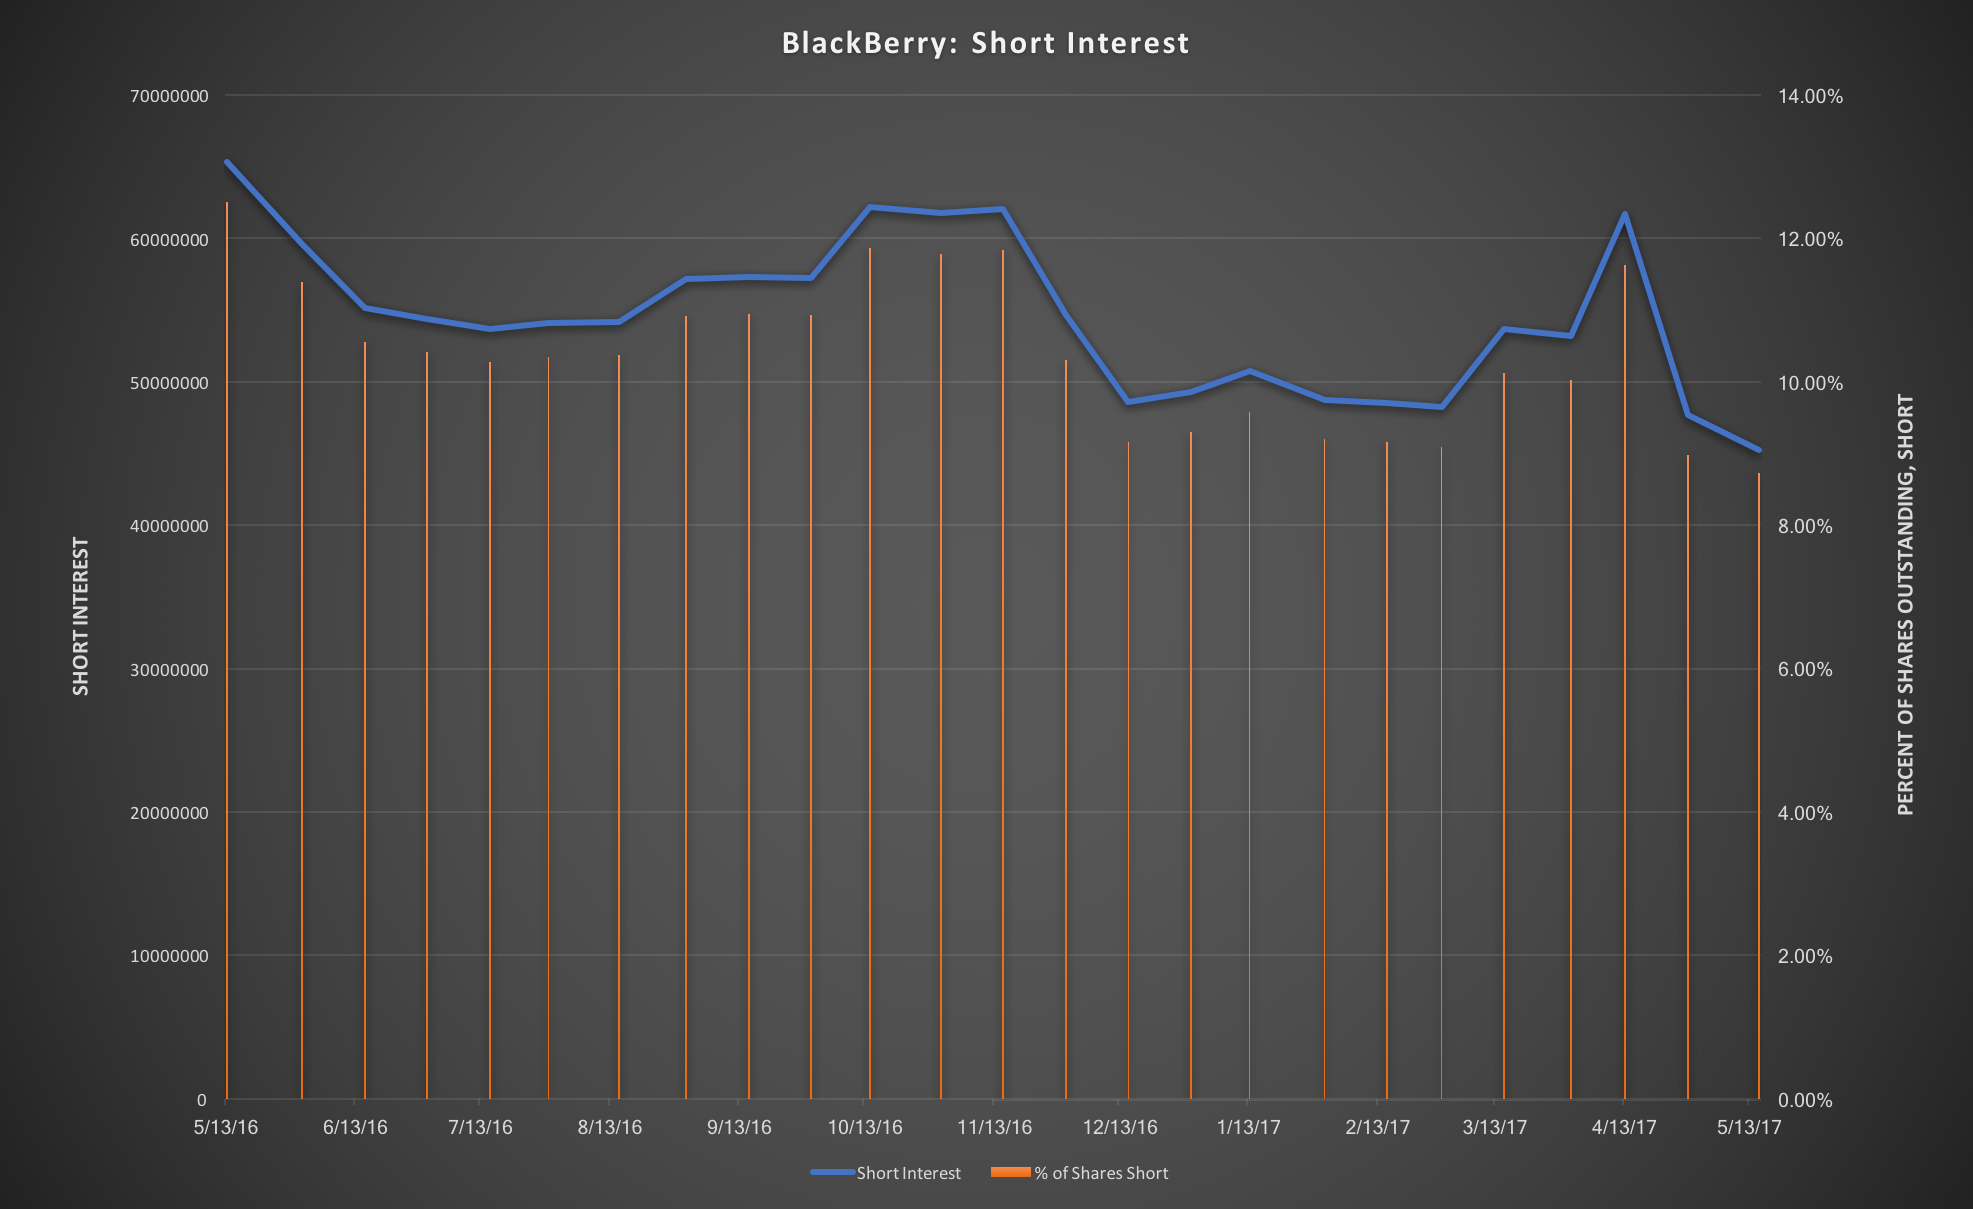 BlackBerry Limited (NASDAQ:BBRY) Valuation According To Analysts